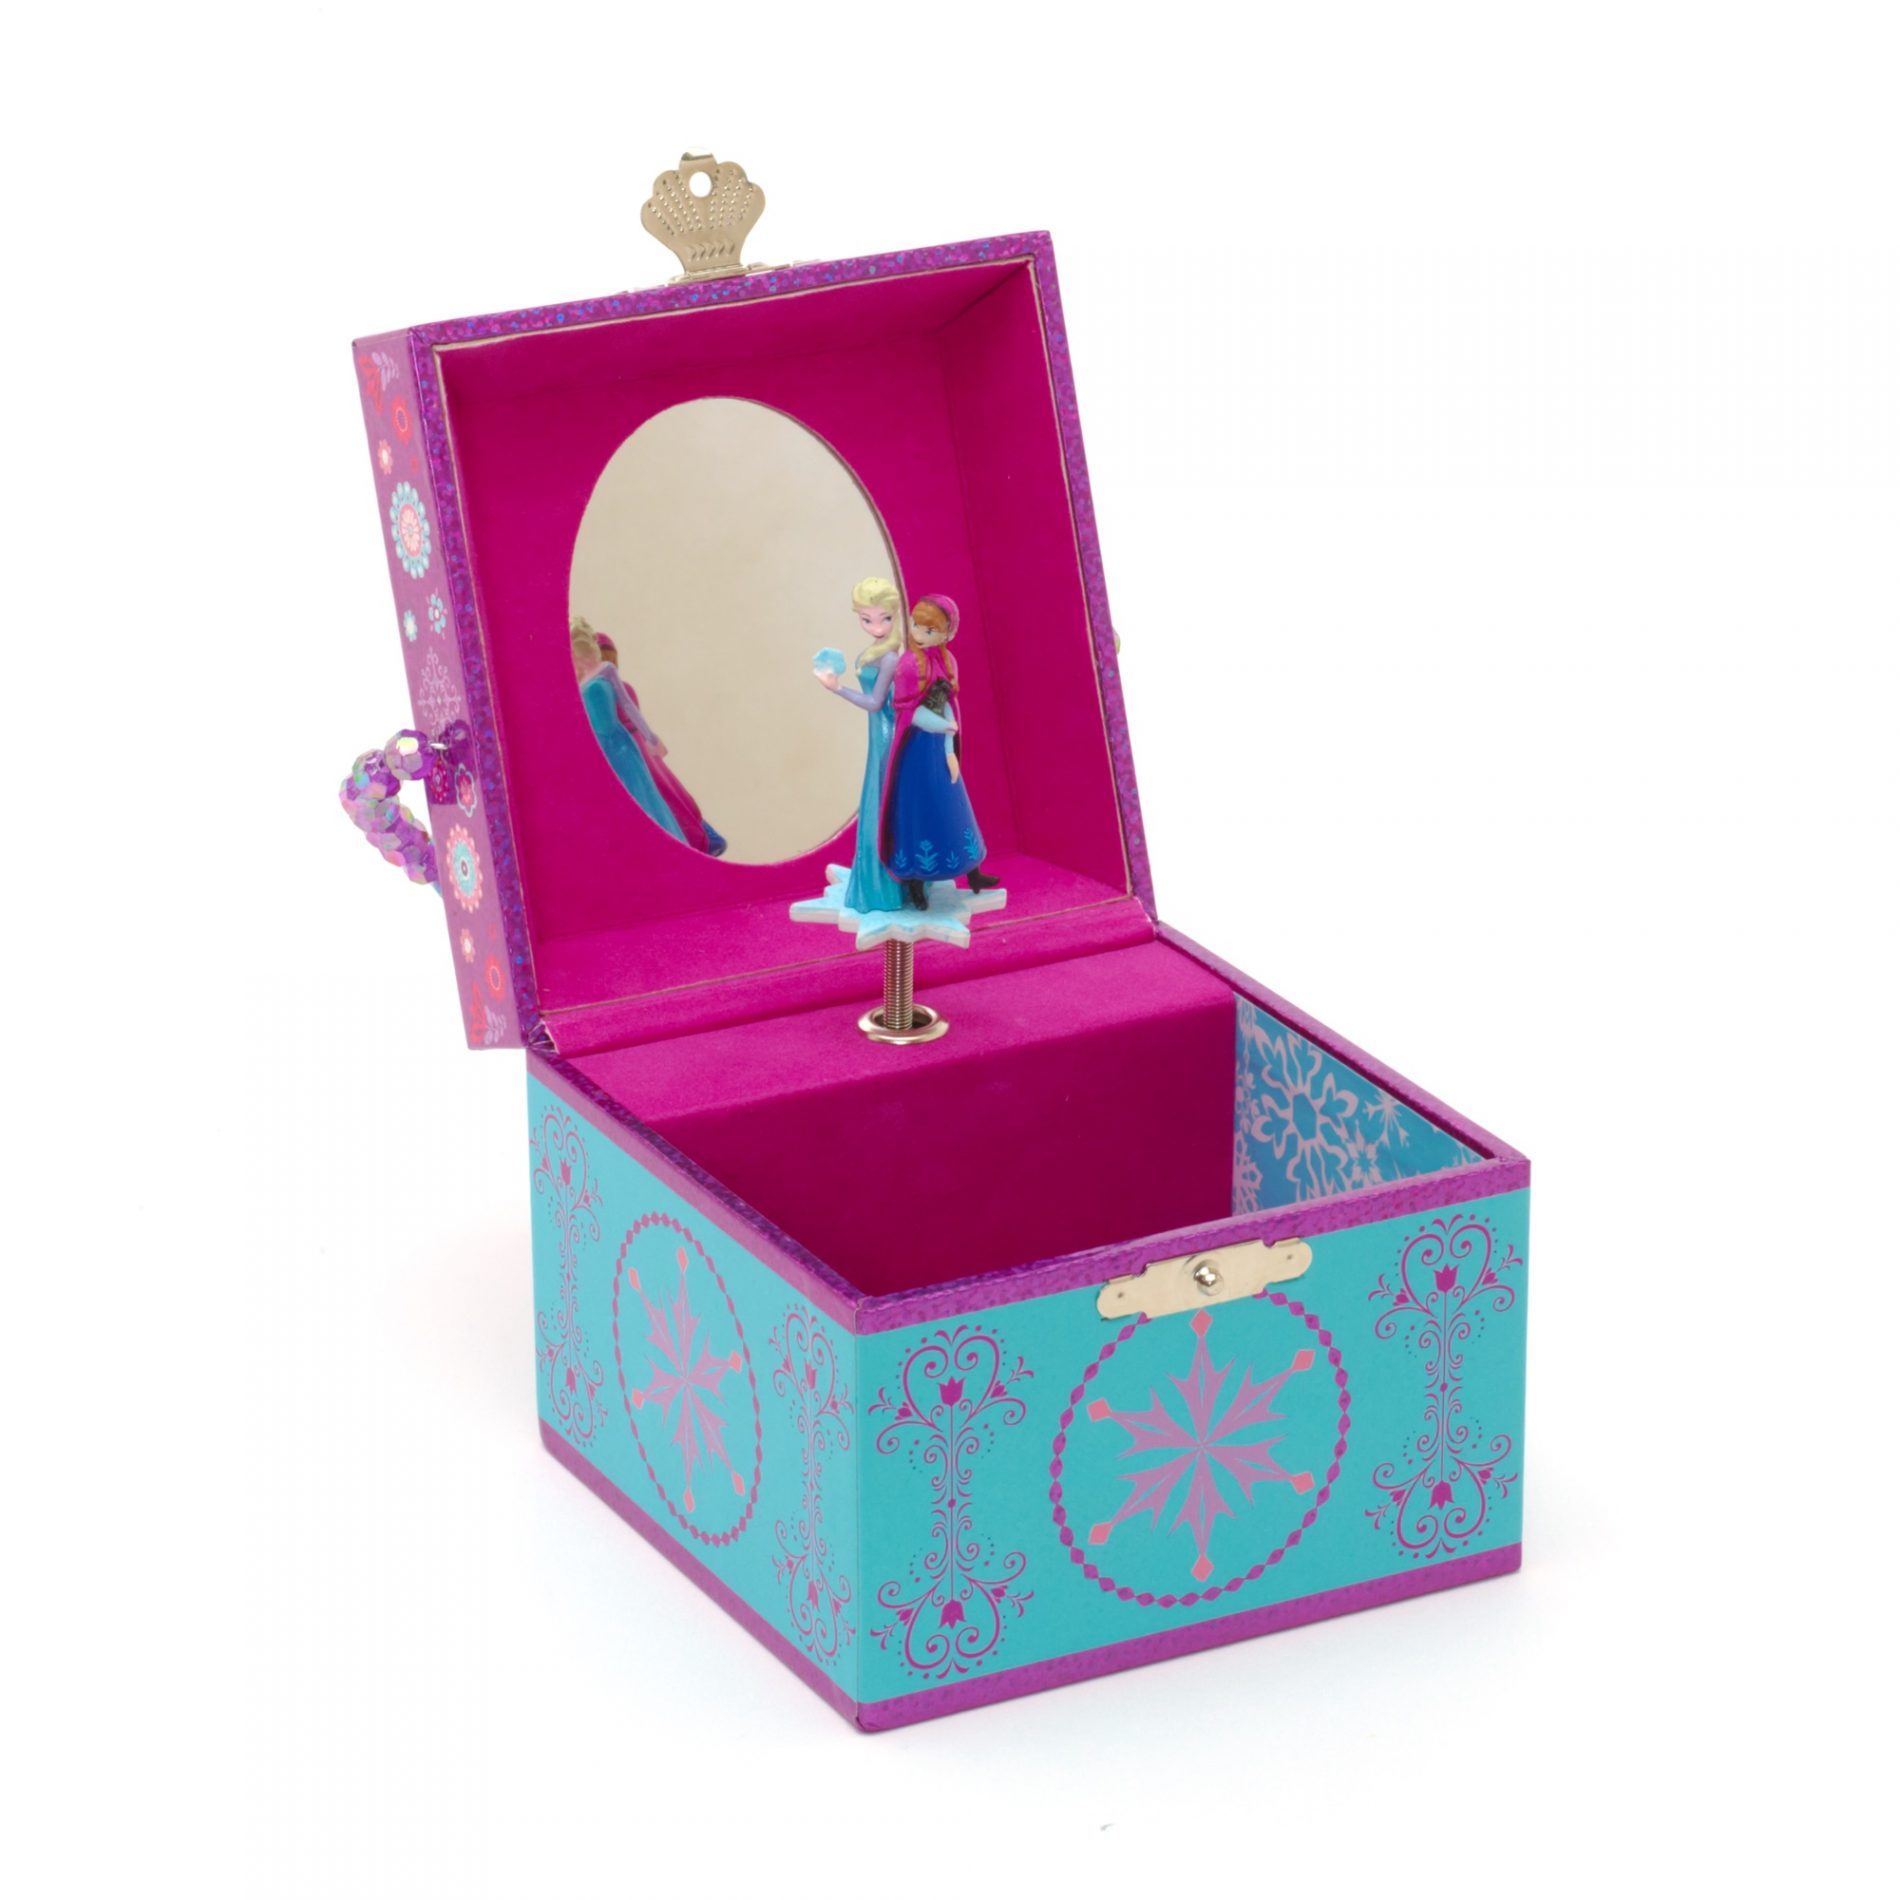 Christmas Gift Guide 2014 Gifts For Girls London Mums